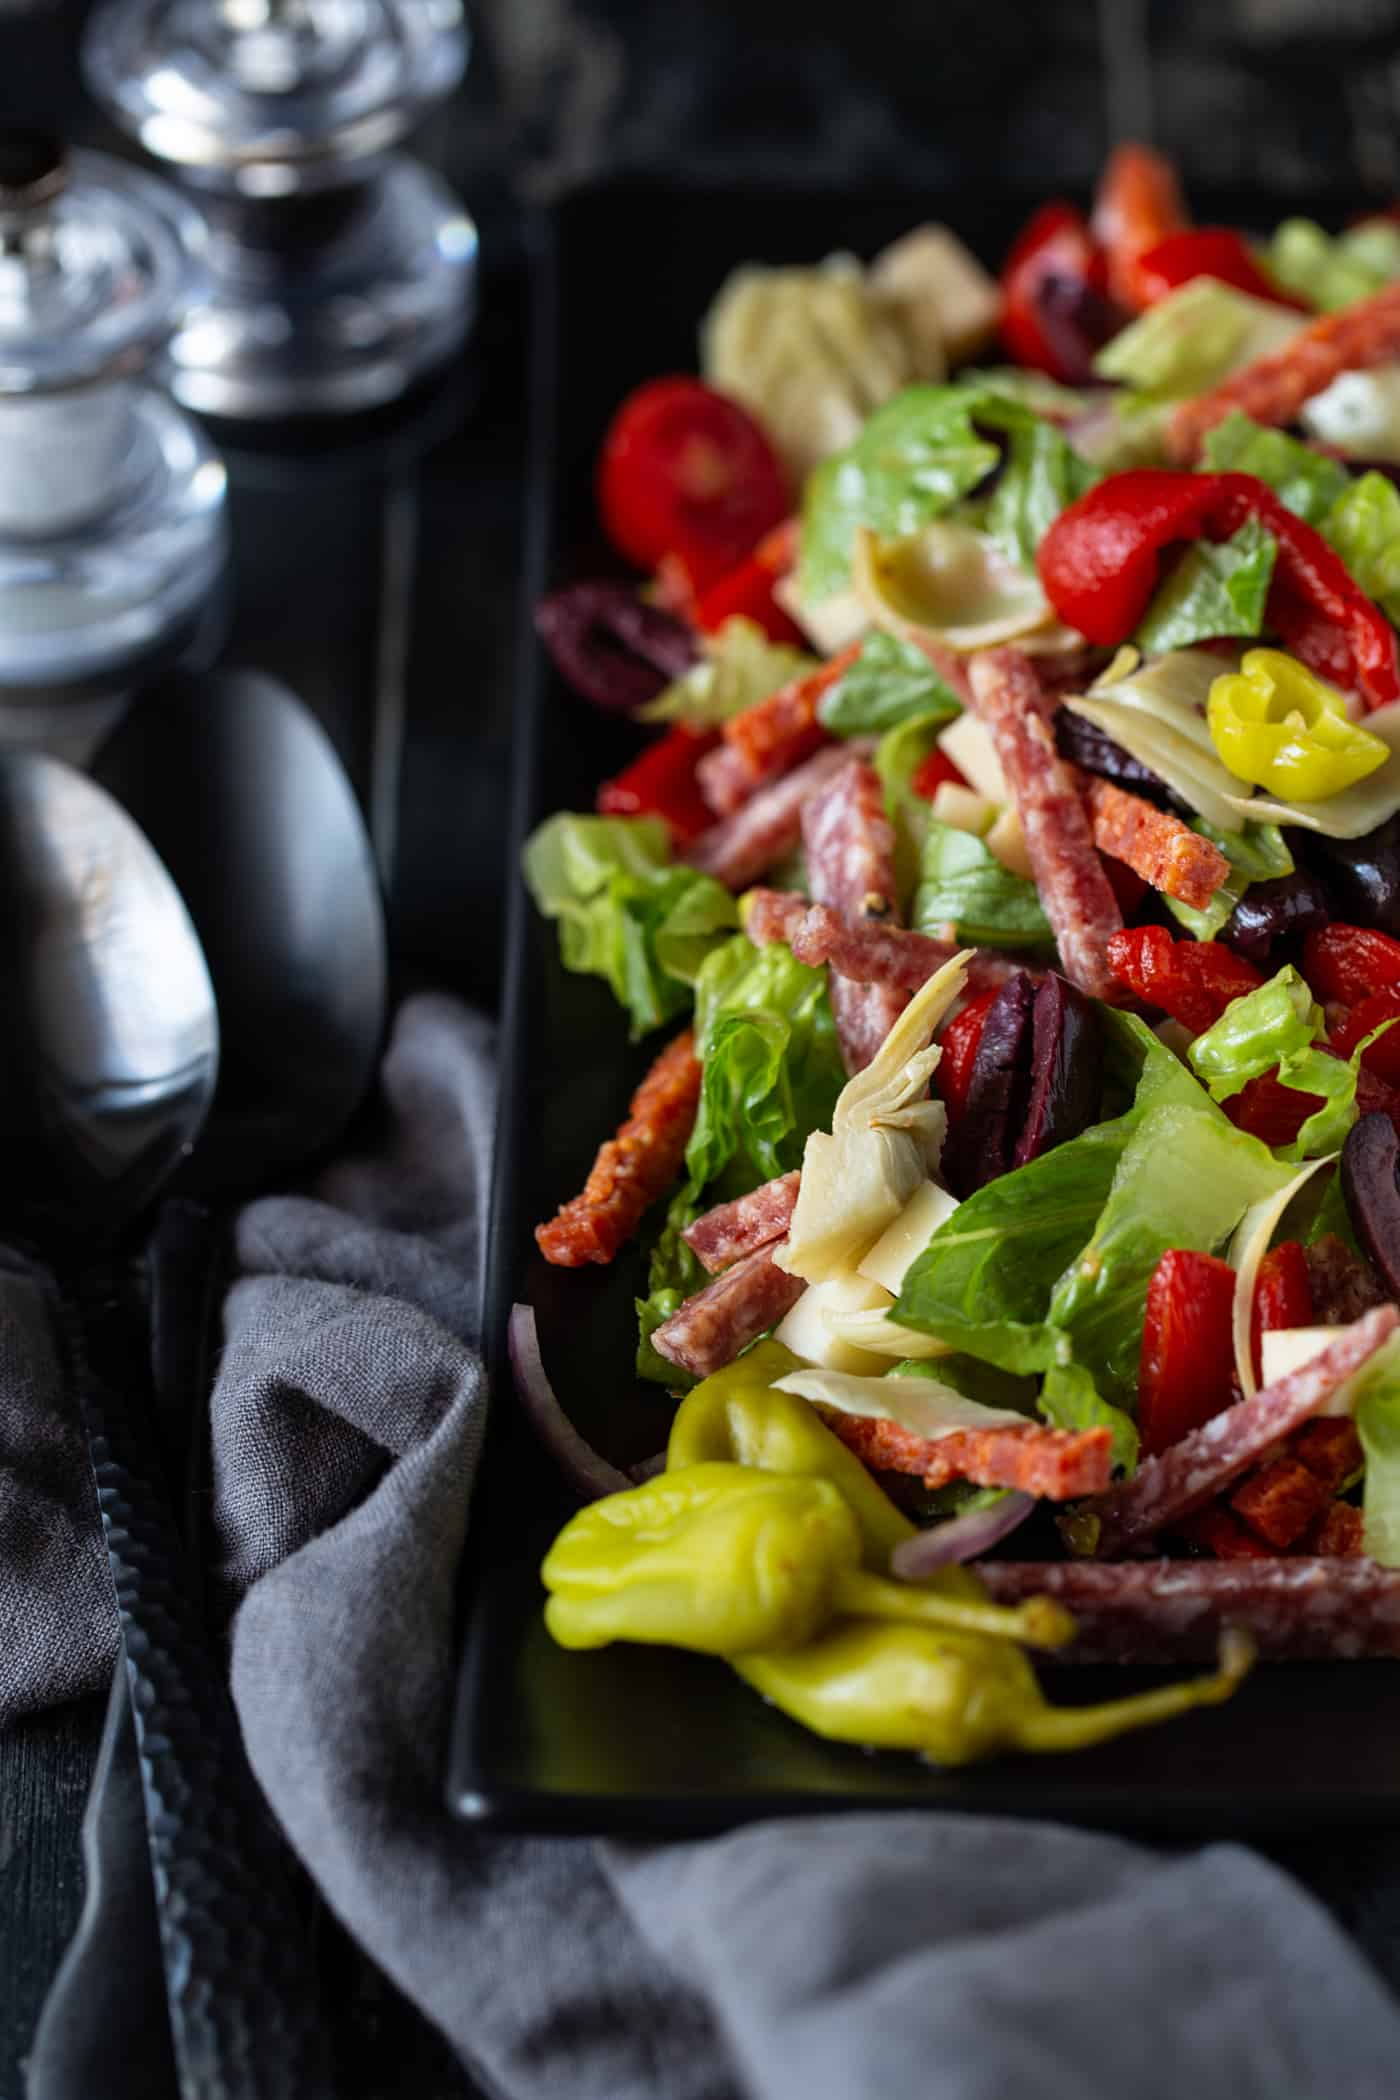 A close up of  Salad and Antipasto.